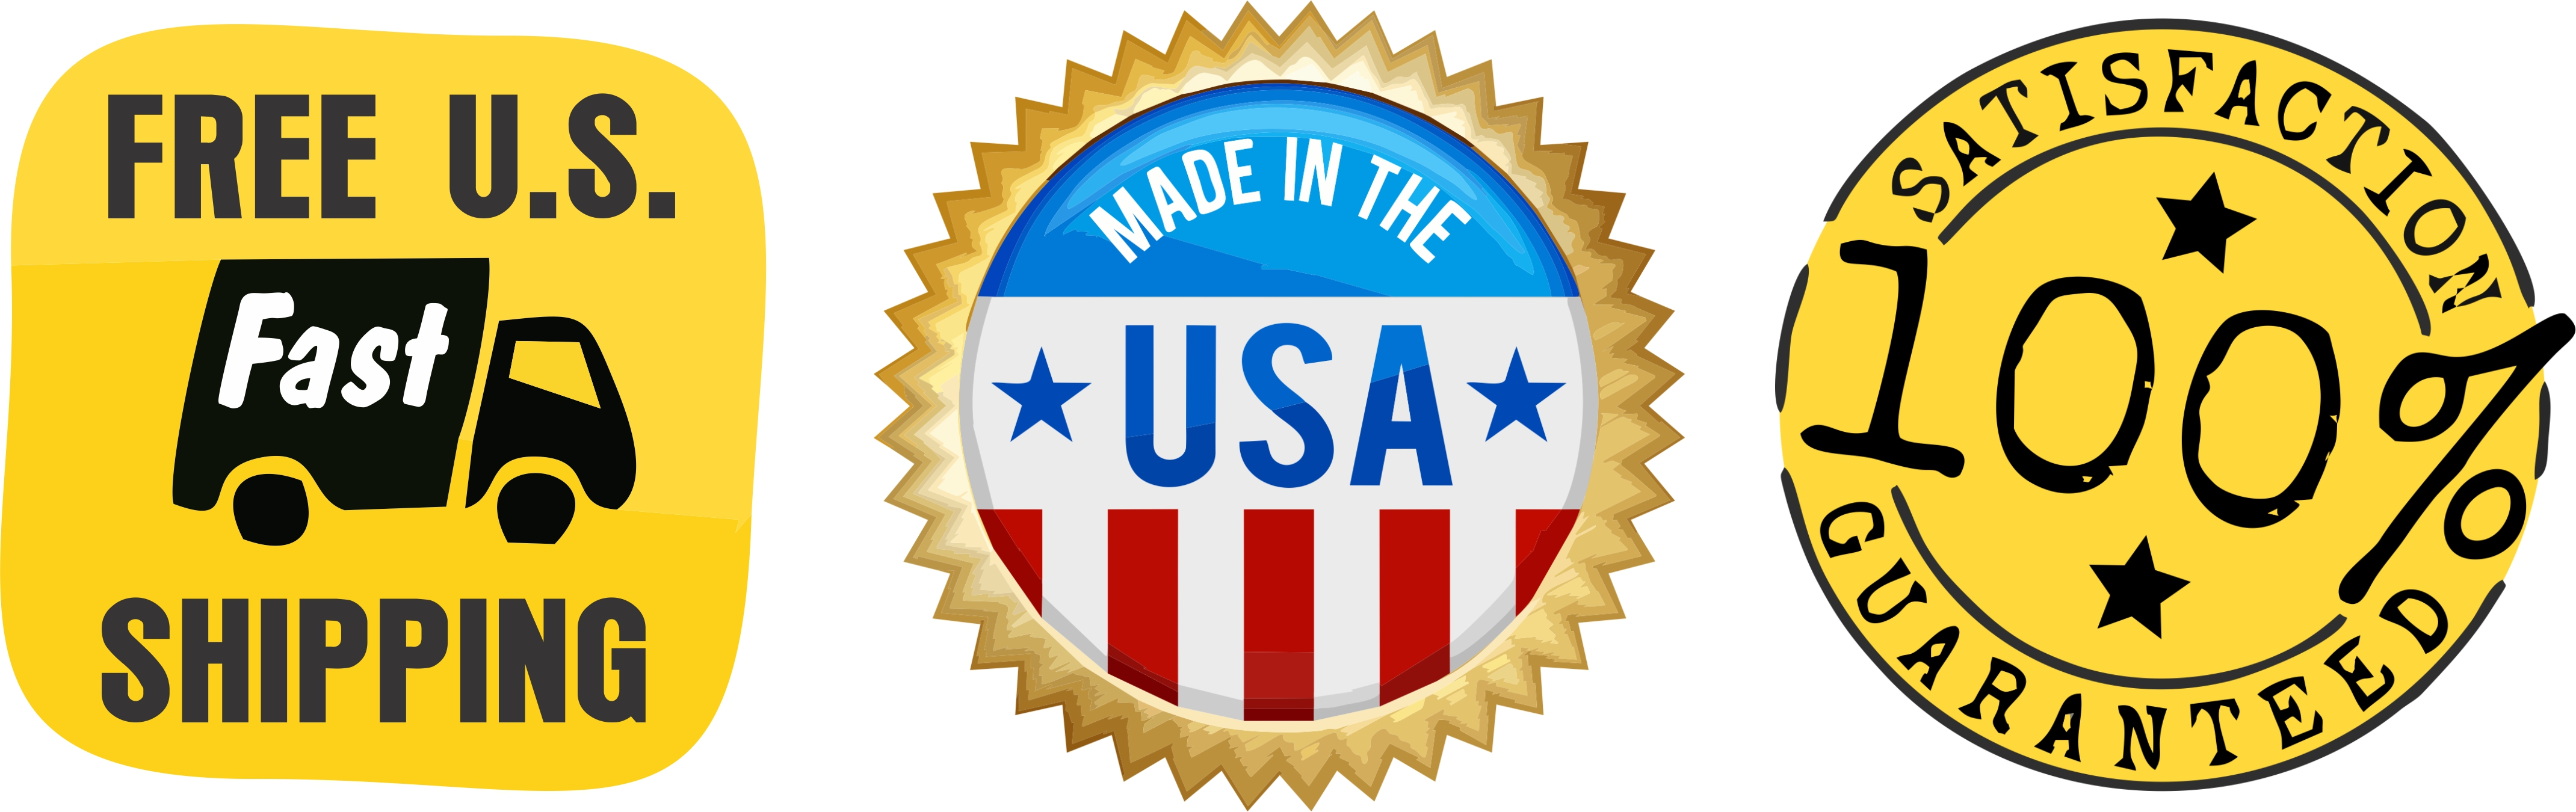 Free US Shipping! Made in USA! 100% Guarantee!